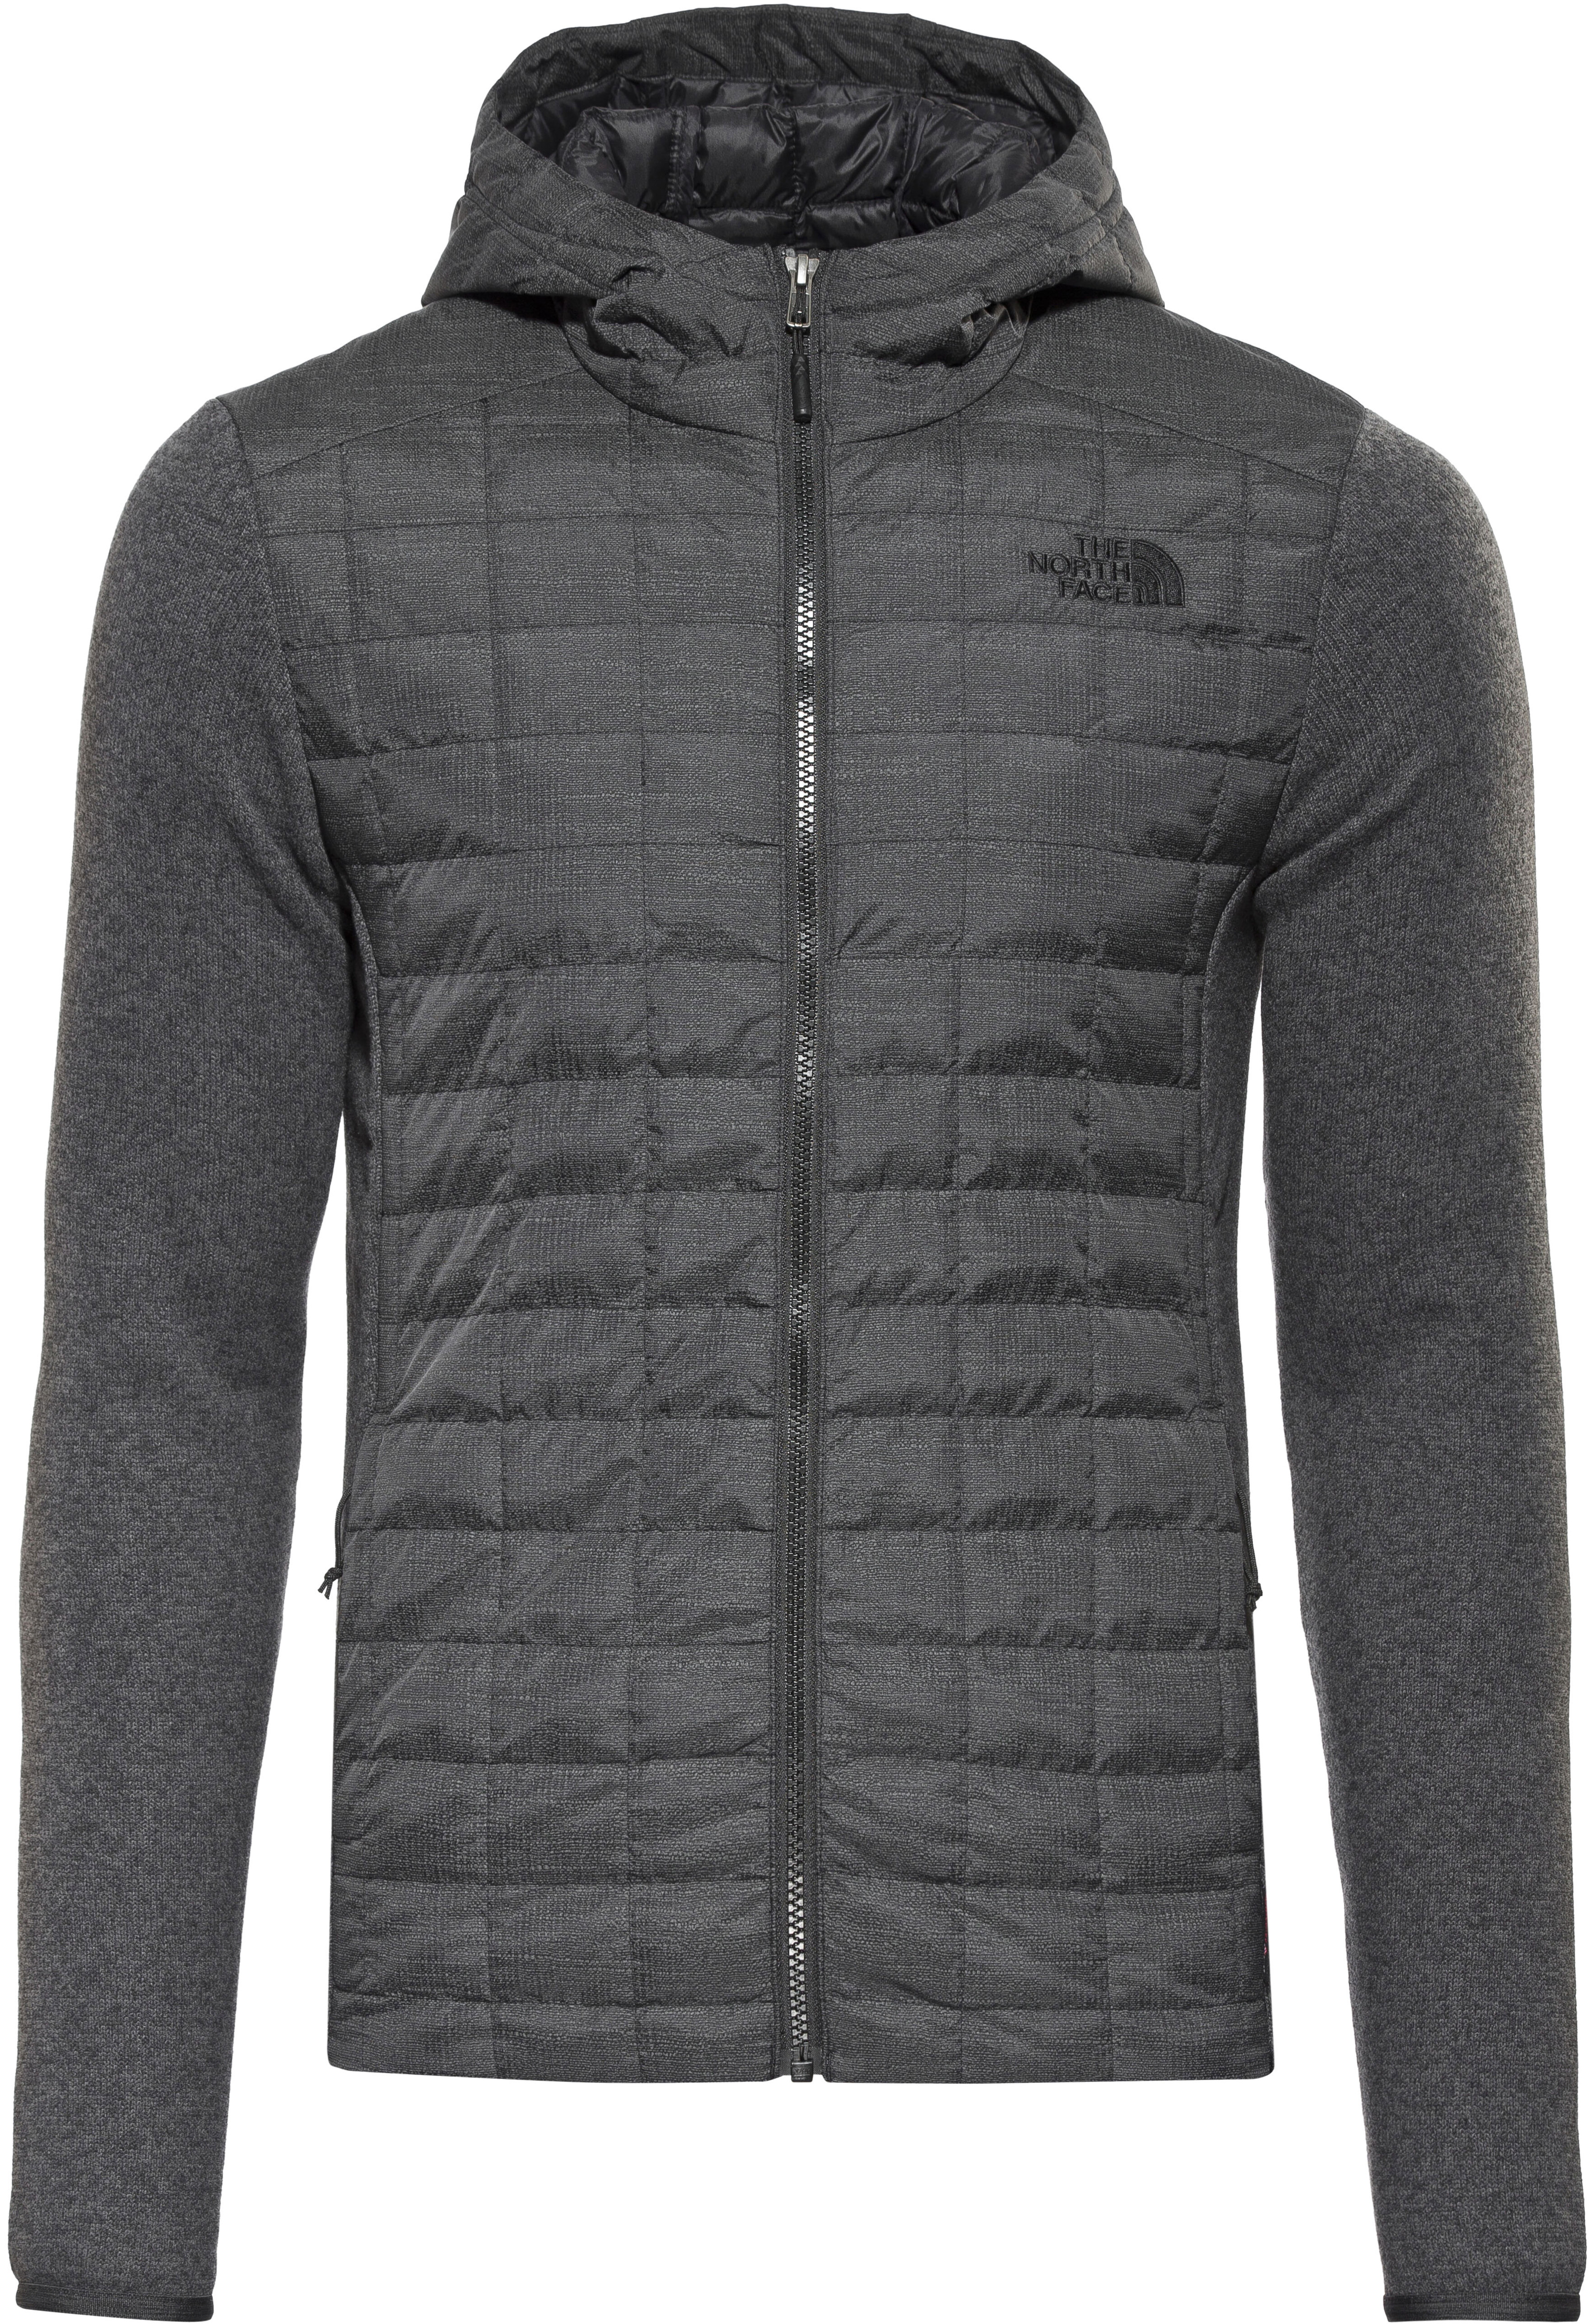 9eb2bba885c9 The North Face Thermoball Gordon Lyons Jacket Men grey black at ...